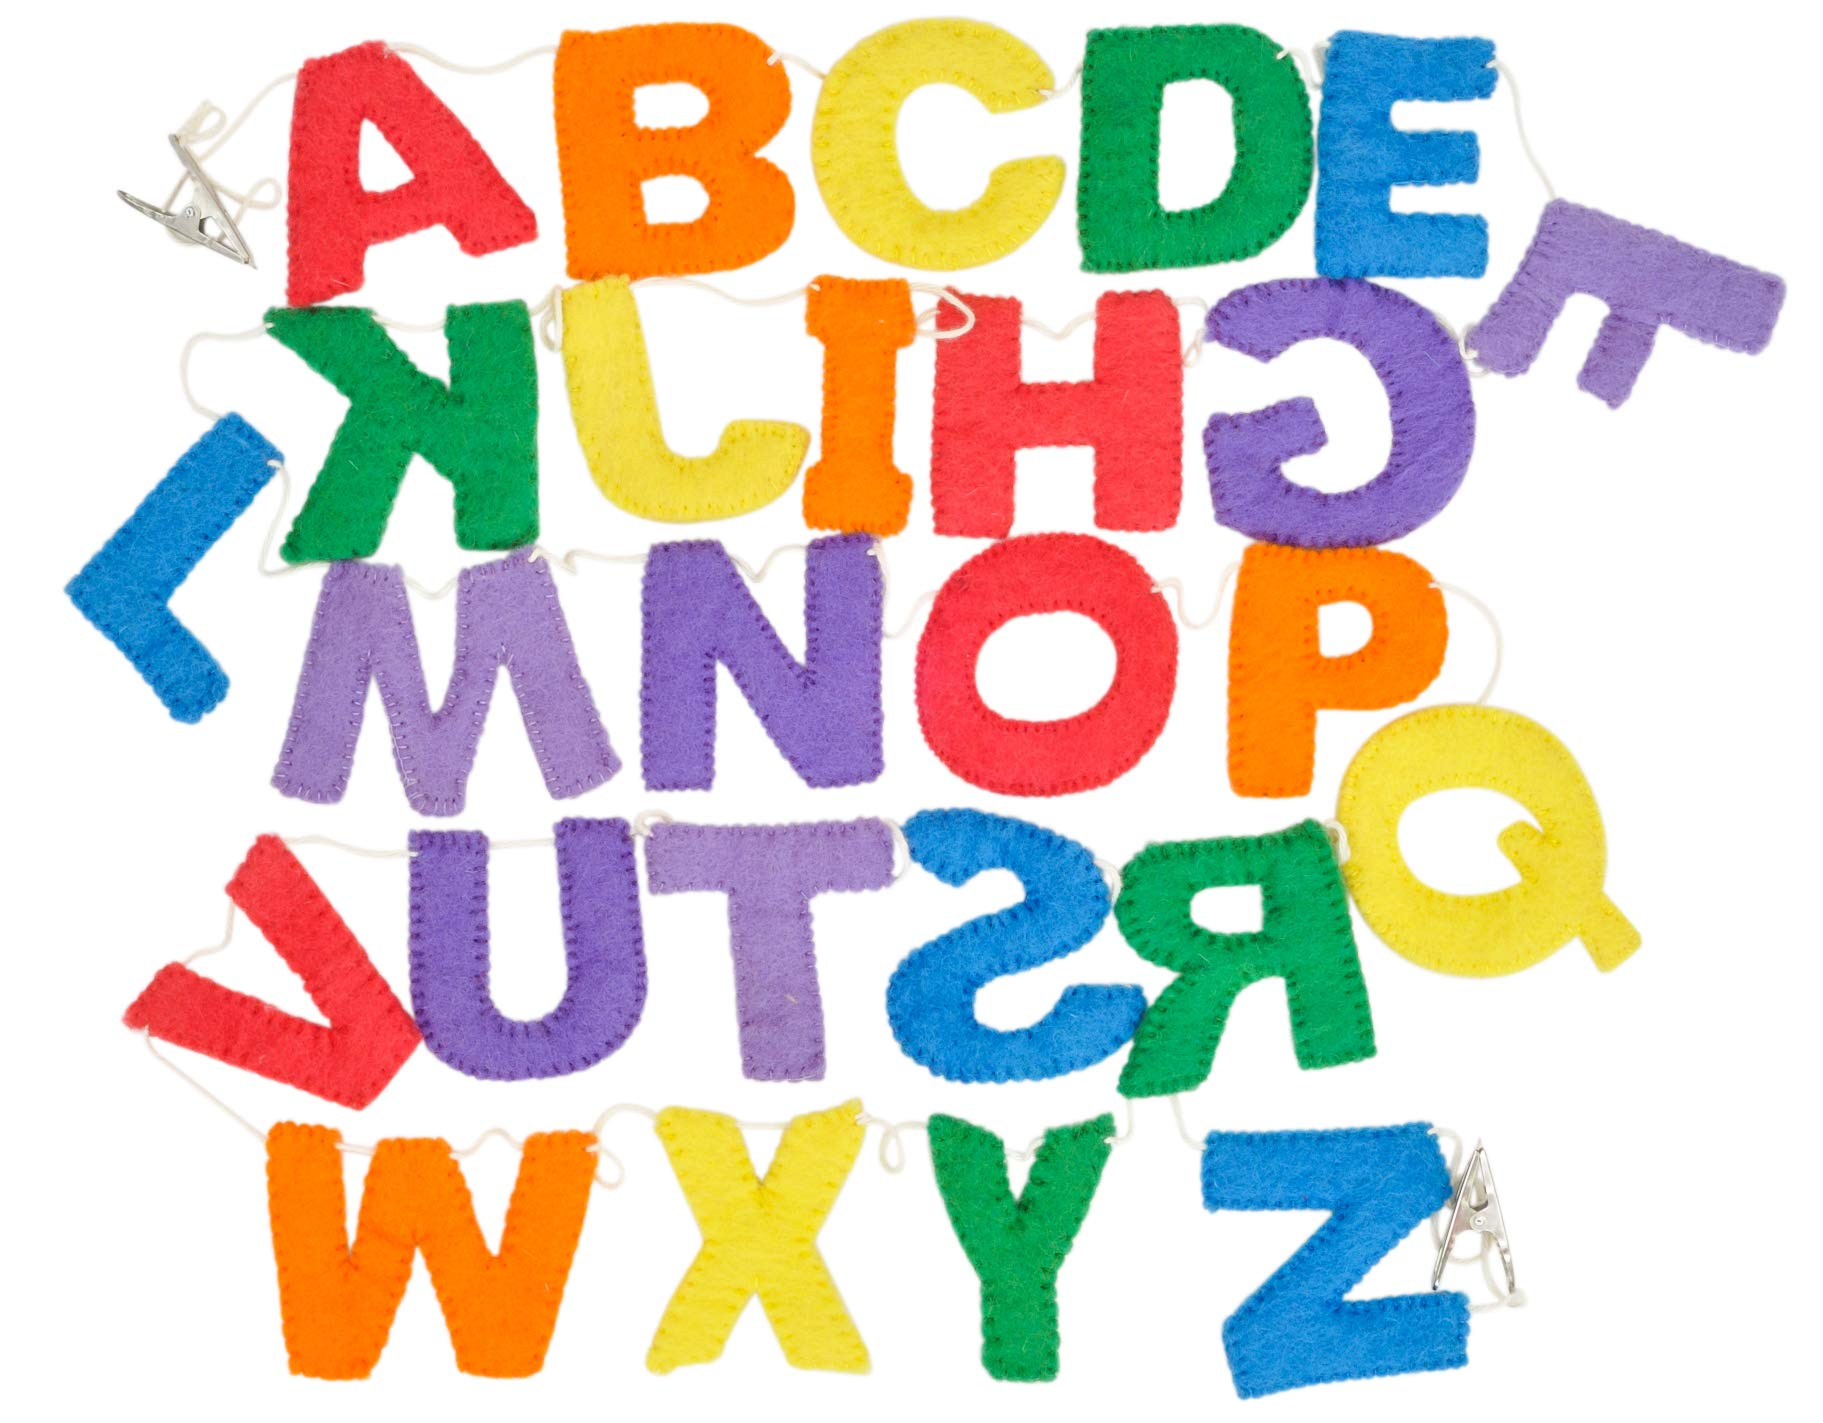 Handmade Wool Felt Alphabet Garland, Upper Case, Rainbow Colors, Great for Toddlers Learning Letters and Colors, School Room Decorations, or Play Room Decor